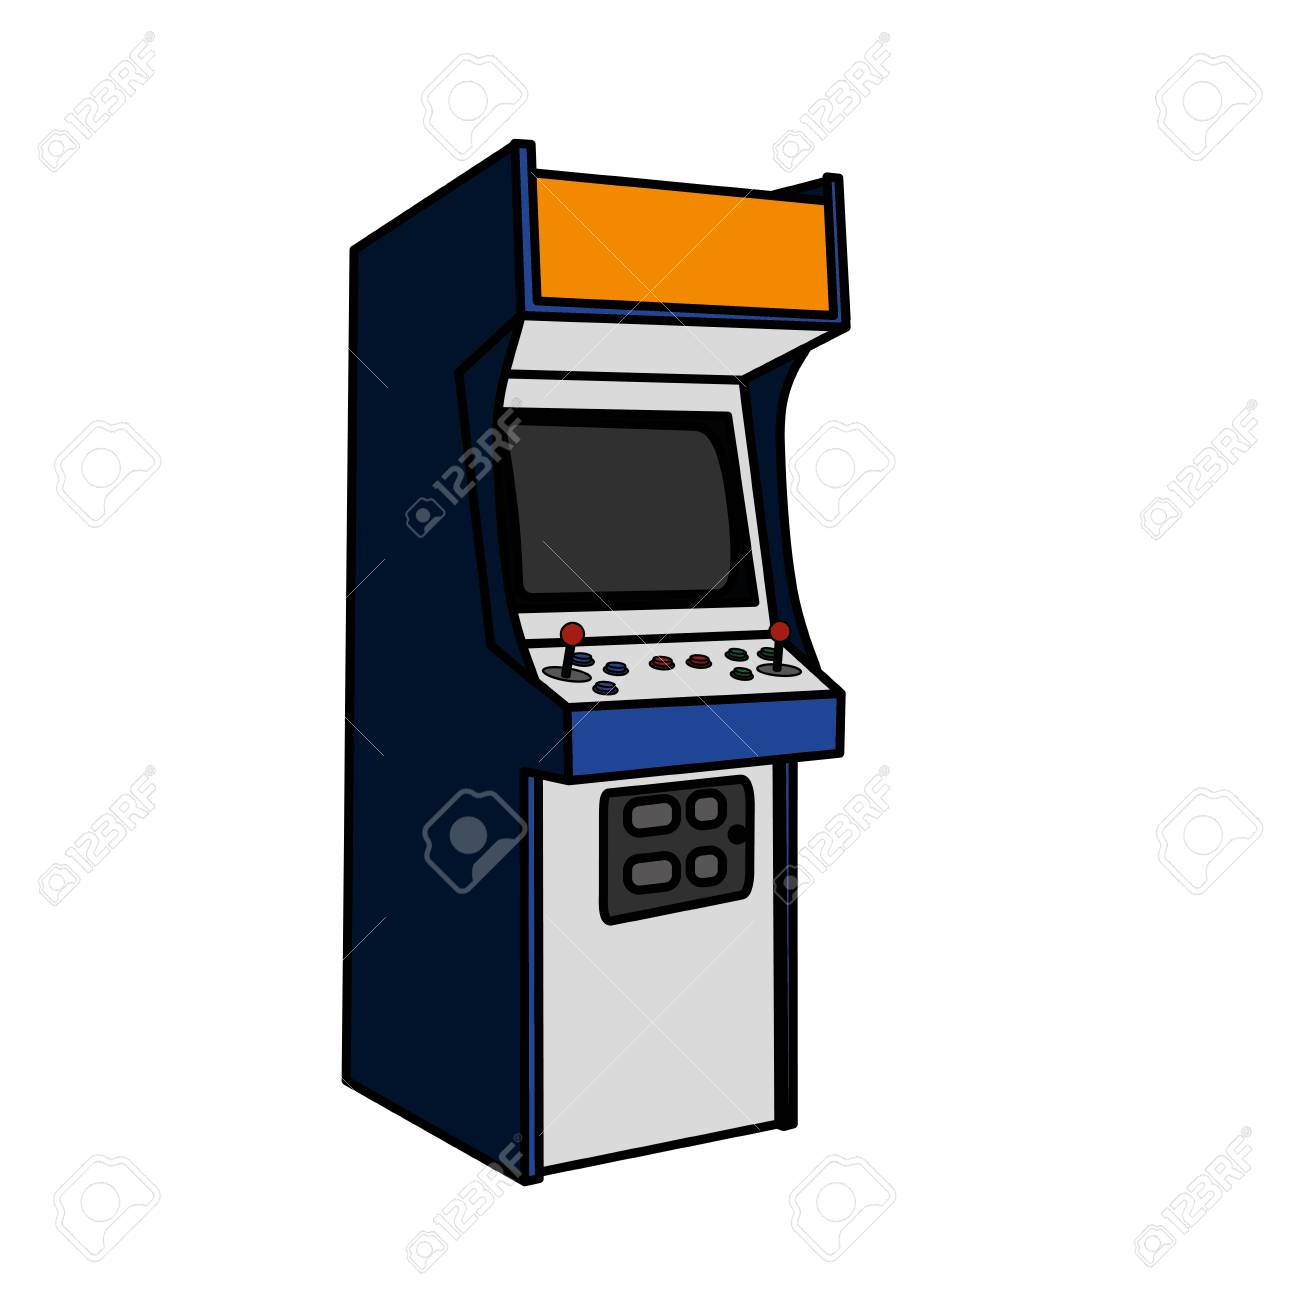 Arcade Machine Of Videogame Play Retro And Technology Theme